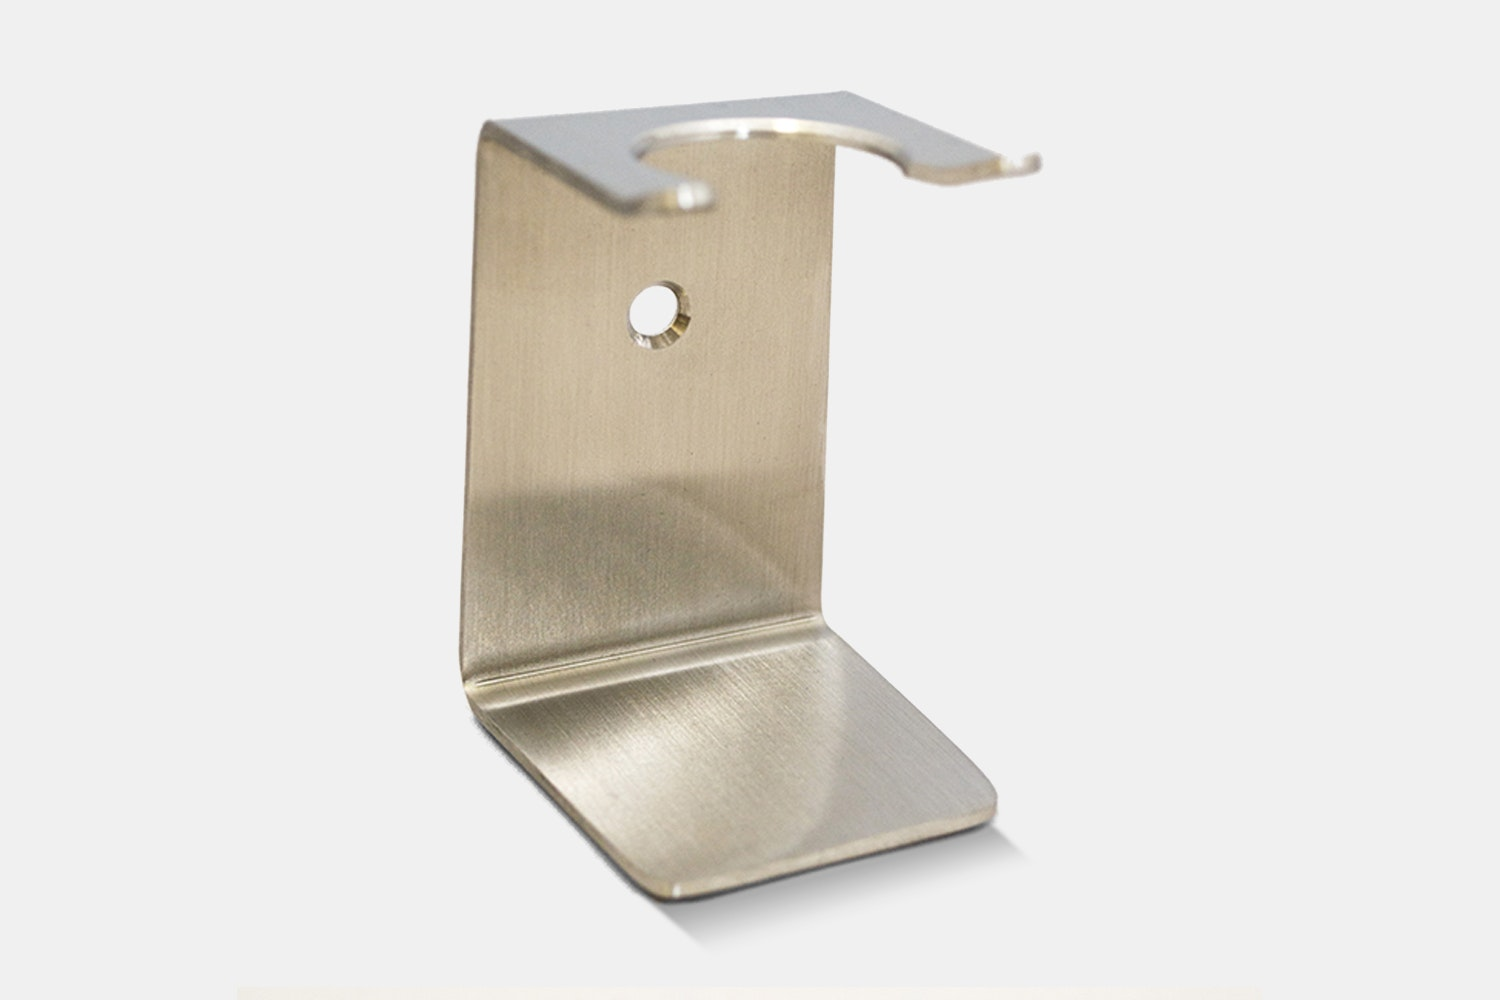 Brush Stand – Stainless Steel (+ $5)